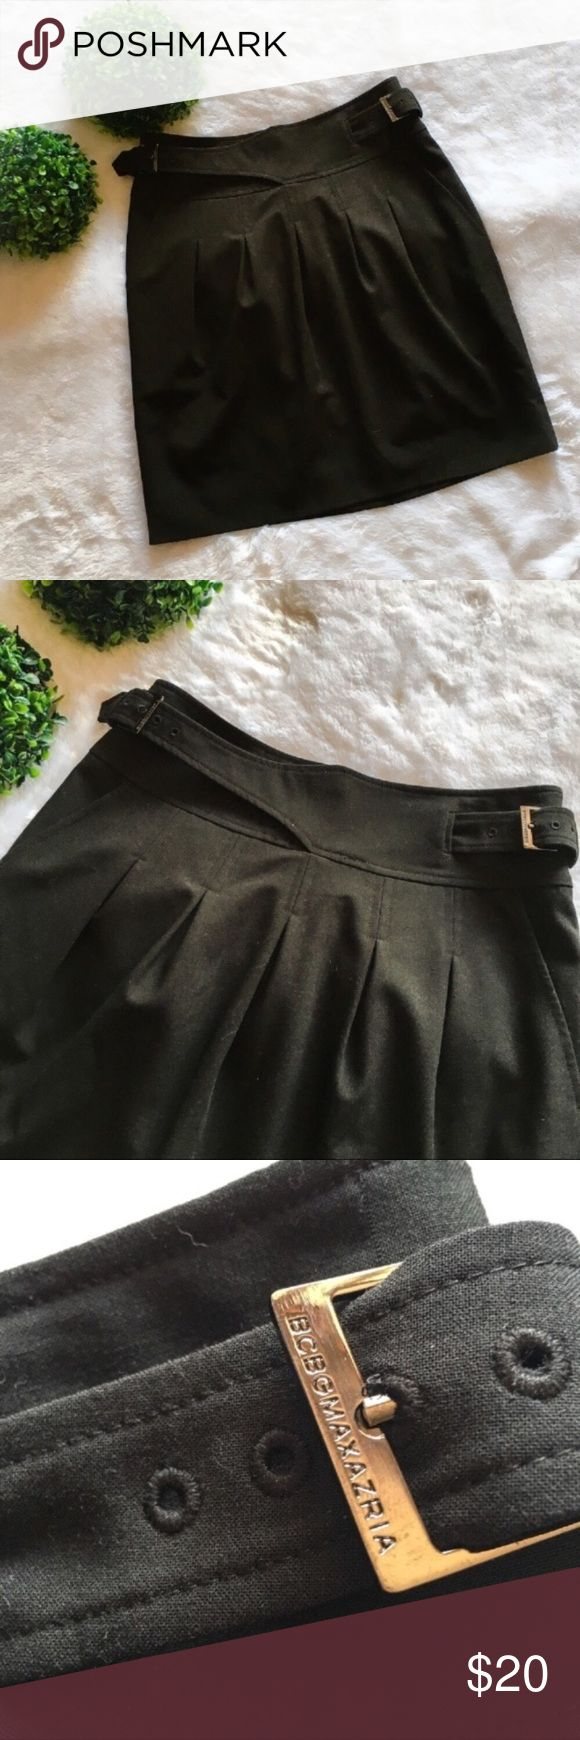 """BCBG Max Azria Black Skirt Preloved with no flaws. Size 2, 18.5"""" long, and a 27"""" waist. I'm only looking to sell at this time so sorry but no trades. My listing price is firm. BCBGMaxAzria Skirts"""